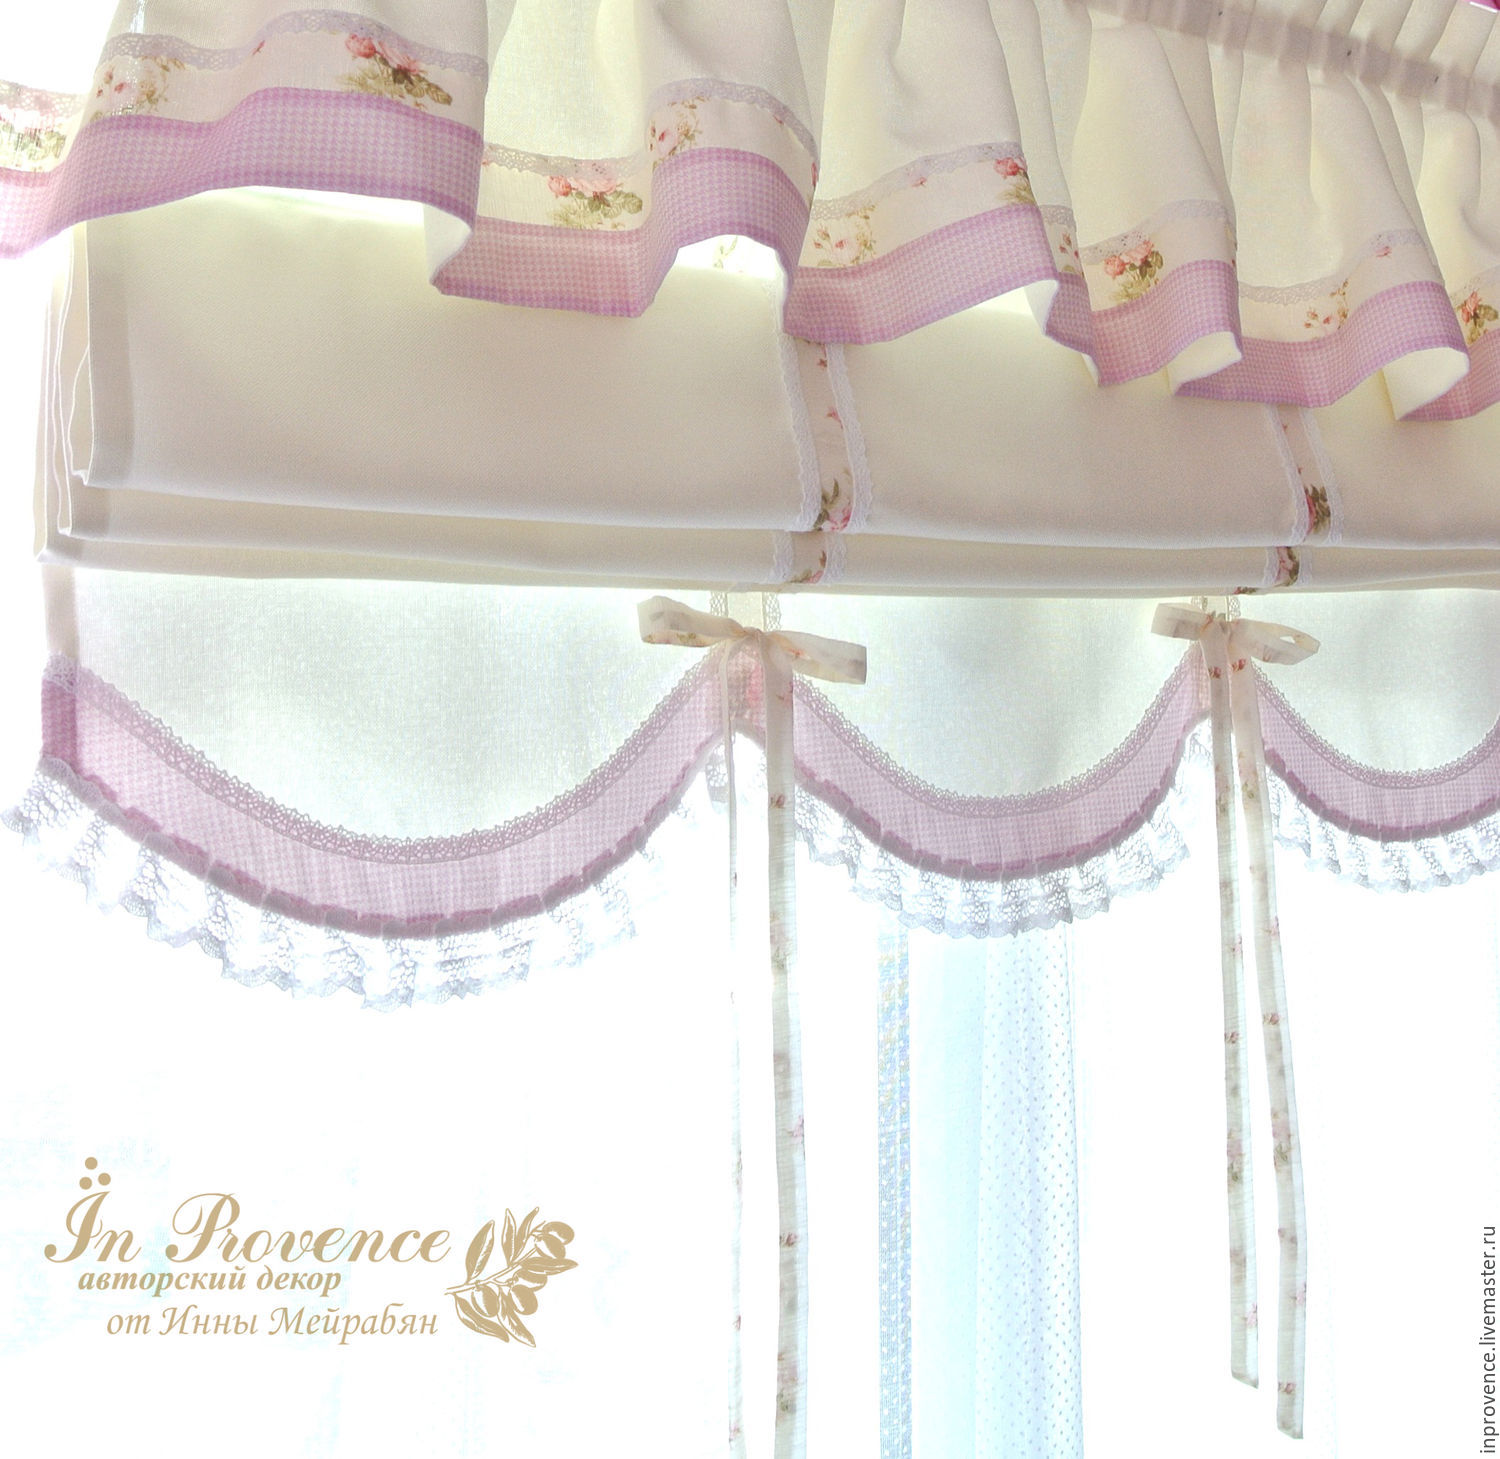 Buy Linen curtains in the kitchen of beige and olive in Provence